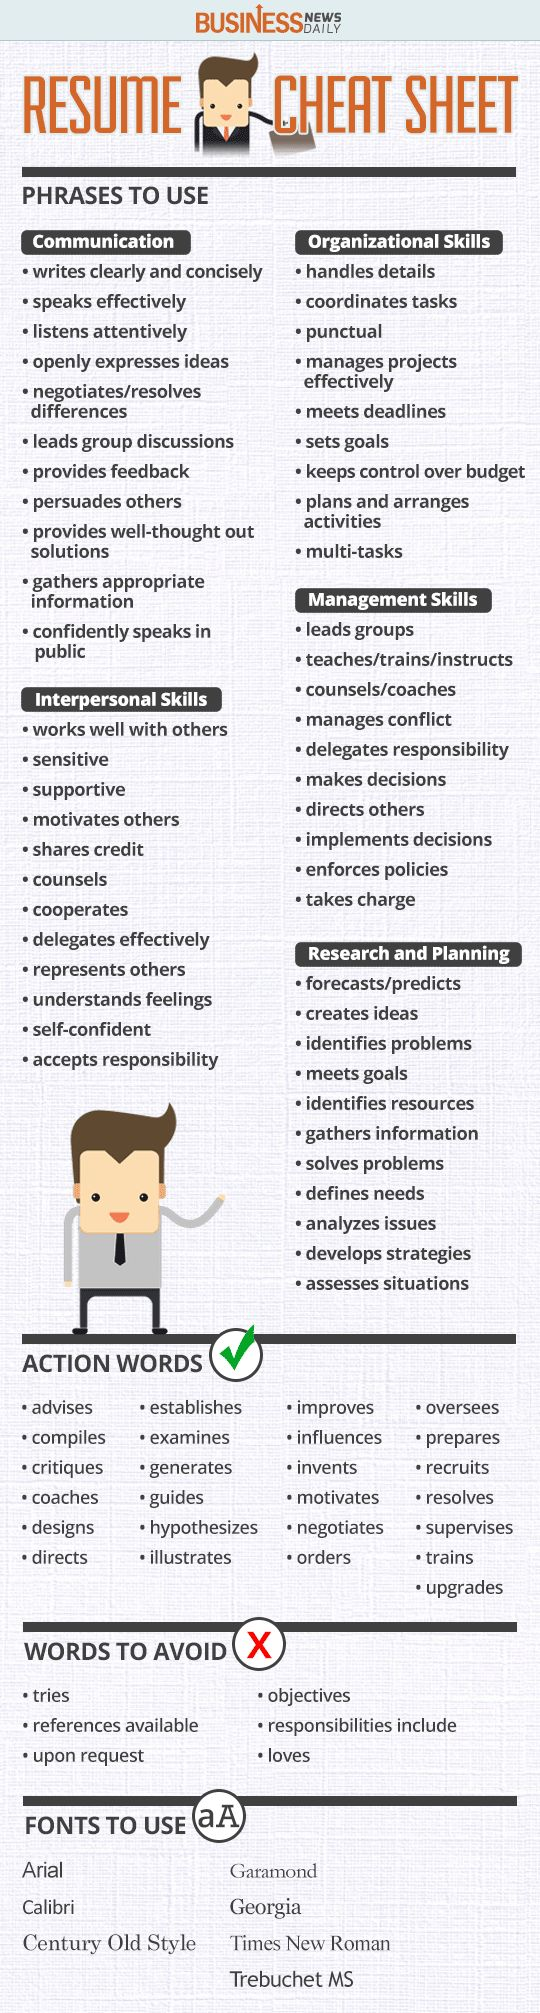 Opposenewapstandardsus  Fascinating  Ideas About Resume On Pinterest  Cv Format Resume Cv And  With Excellent Resume Cheat Sheet Infographic Andrews Almost Done With A Complete Unit On Employment Which With Nice Samples Of Professional Resumes Also High School Diploma Resume In Addition Mortgage Processor Resume And Resume Qualification Examples As Well As Search For Resumes Additionally Affiliations On Resume From Pinterestcom With Opposenewapstandardsus  Excellent  Ideas About Resume On Pinterest  Cv Format Resume Cv And  With Nice Resume Cheat Sheet Infographic Andrews Almost Done With A Complete Unit On Employment Which And Fascinating Samples Of Professional Resumes Also High School Diploma Resume In Addition Mortgage Processor Resume From Pinterestcom